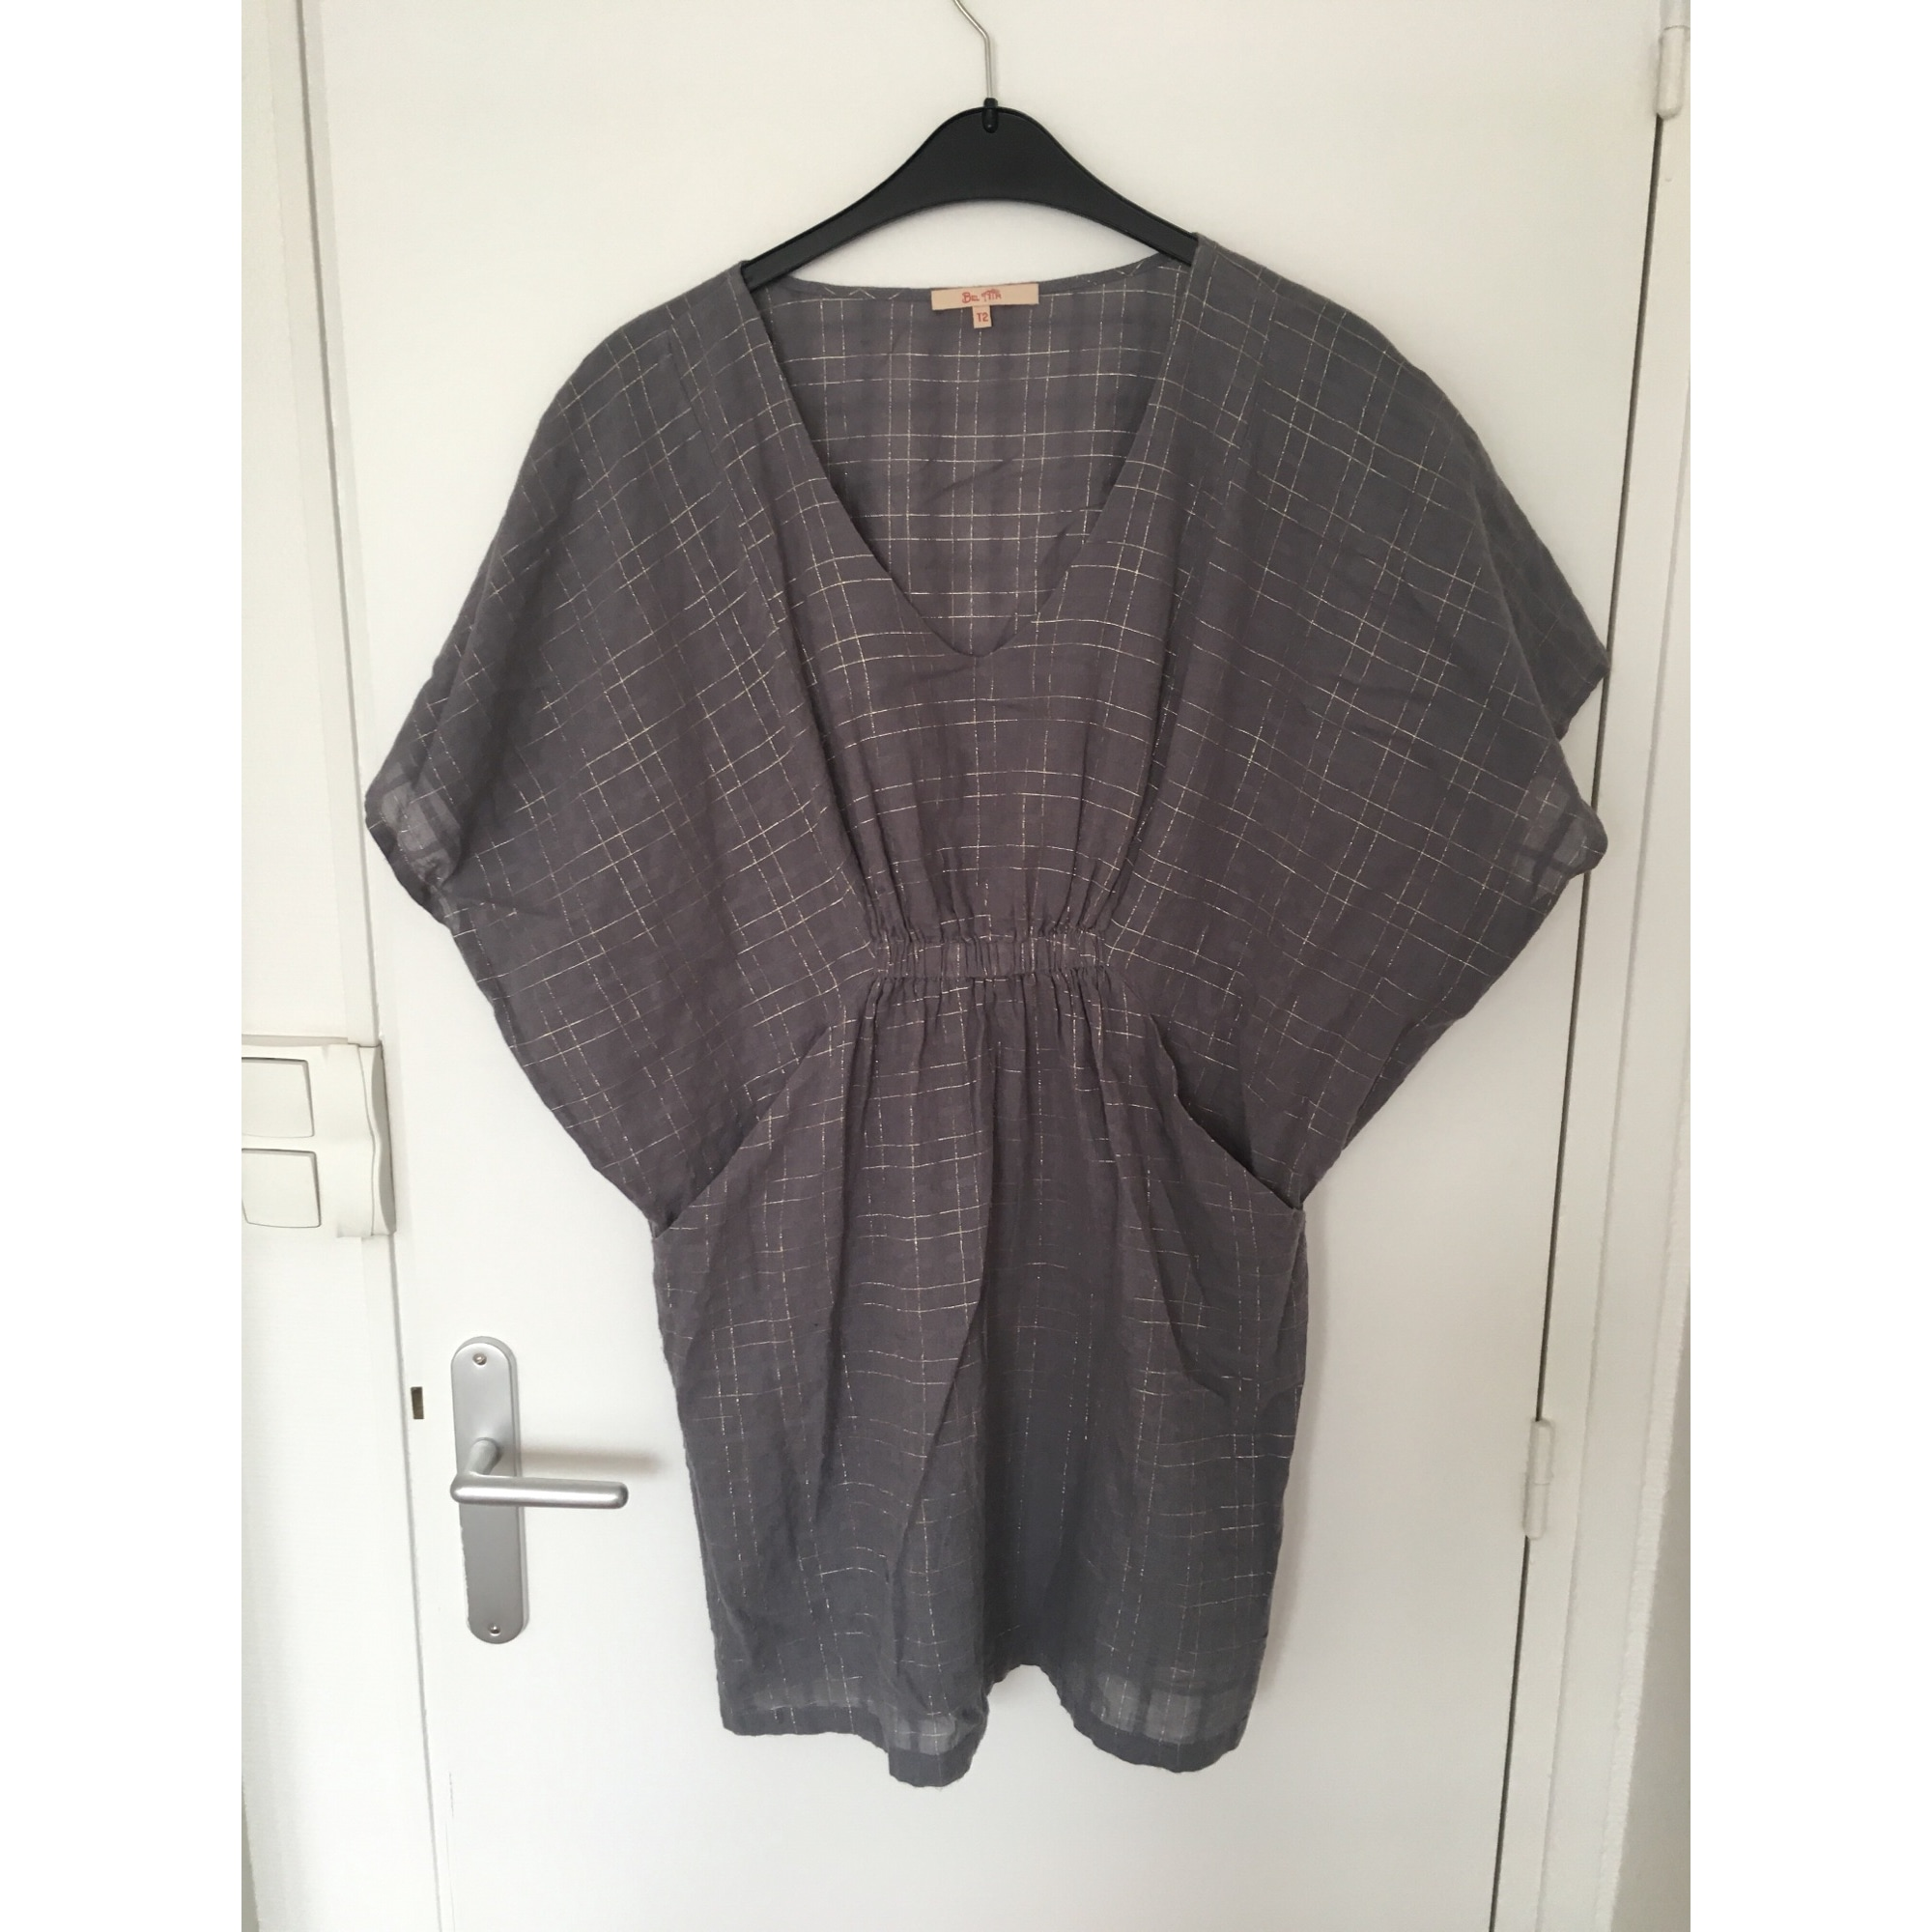 Robe courte BEL AIR Gris, anthracite